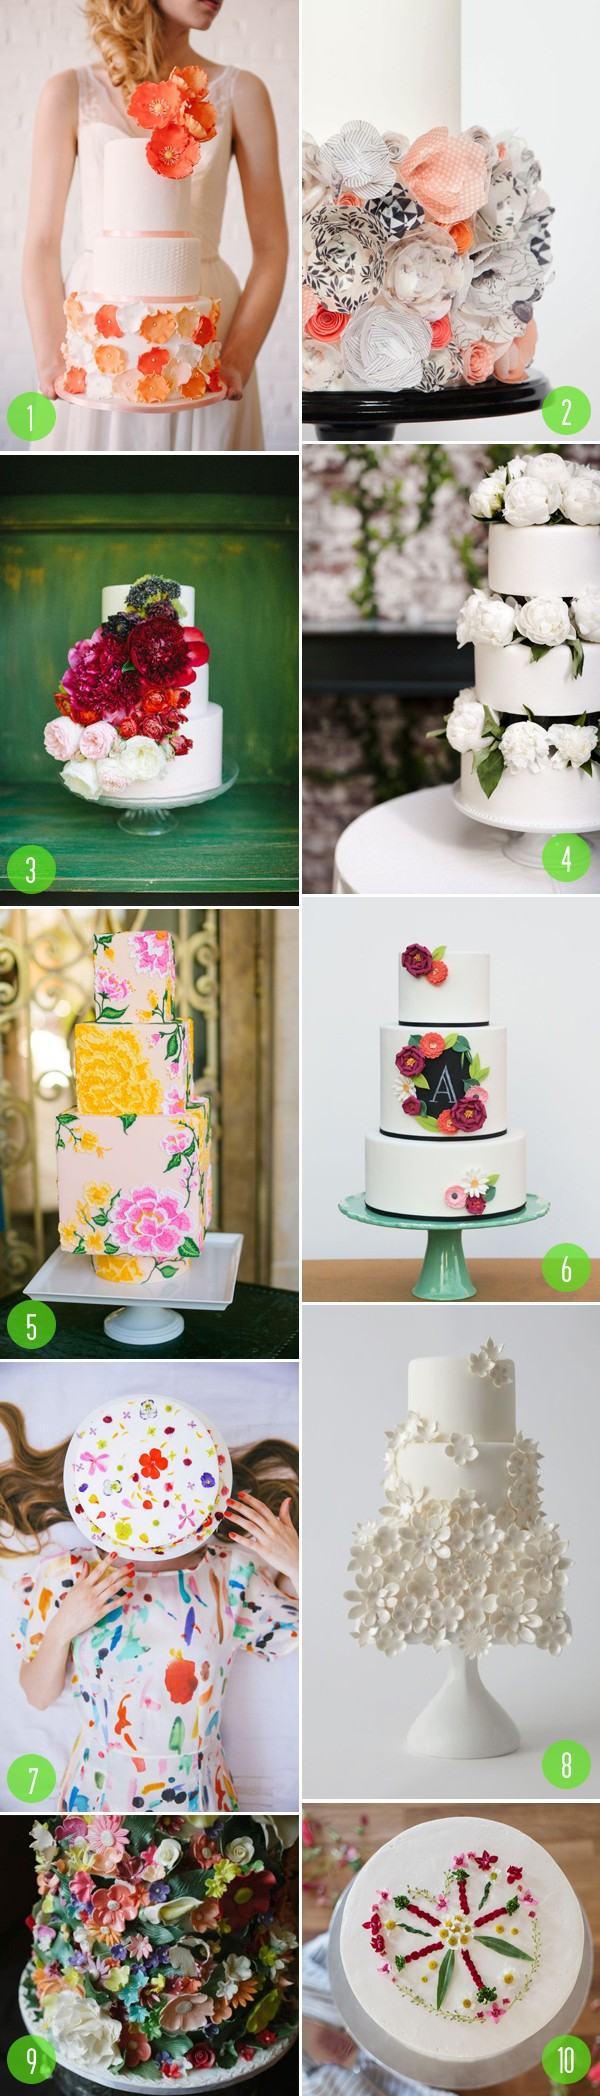 top 10: floral wedding cakes